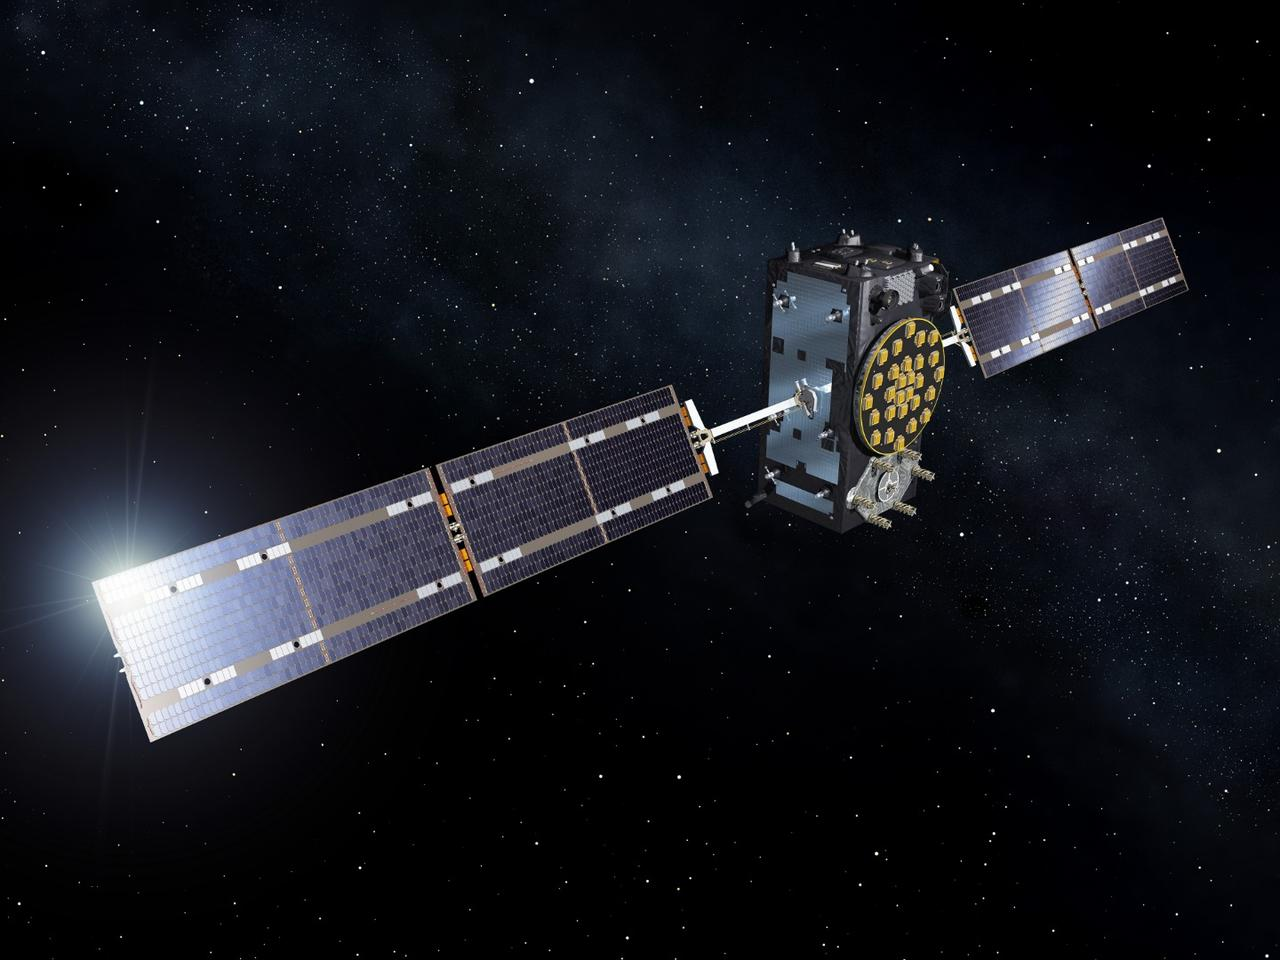 Artist's concept of a Galileo satellite